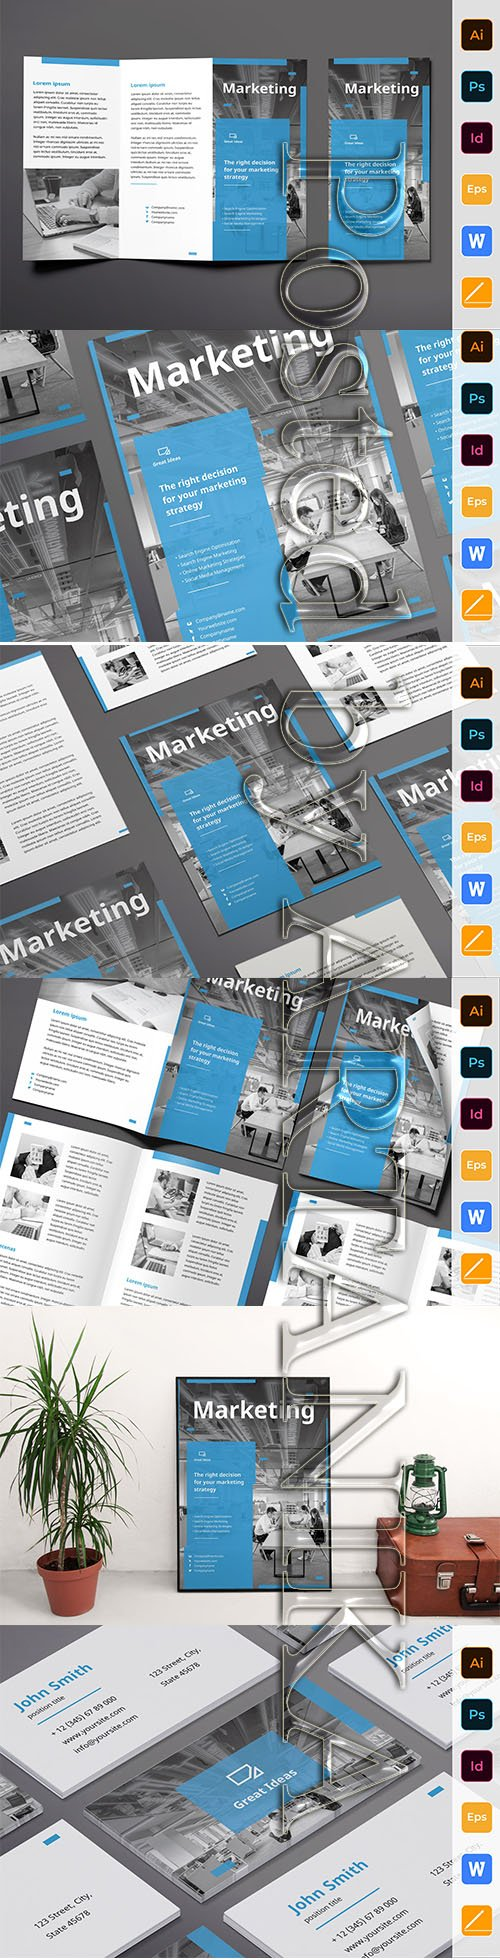 Marketing Firm Poster, Flyer, Business Card, Brochure Trifold and Brochure Bifold Templates